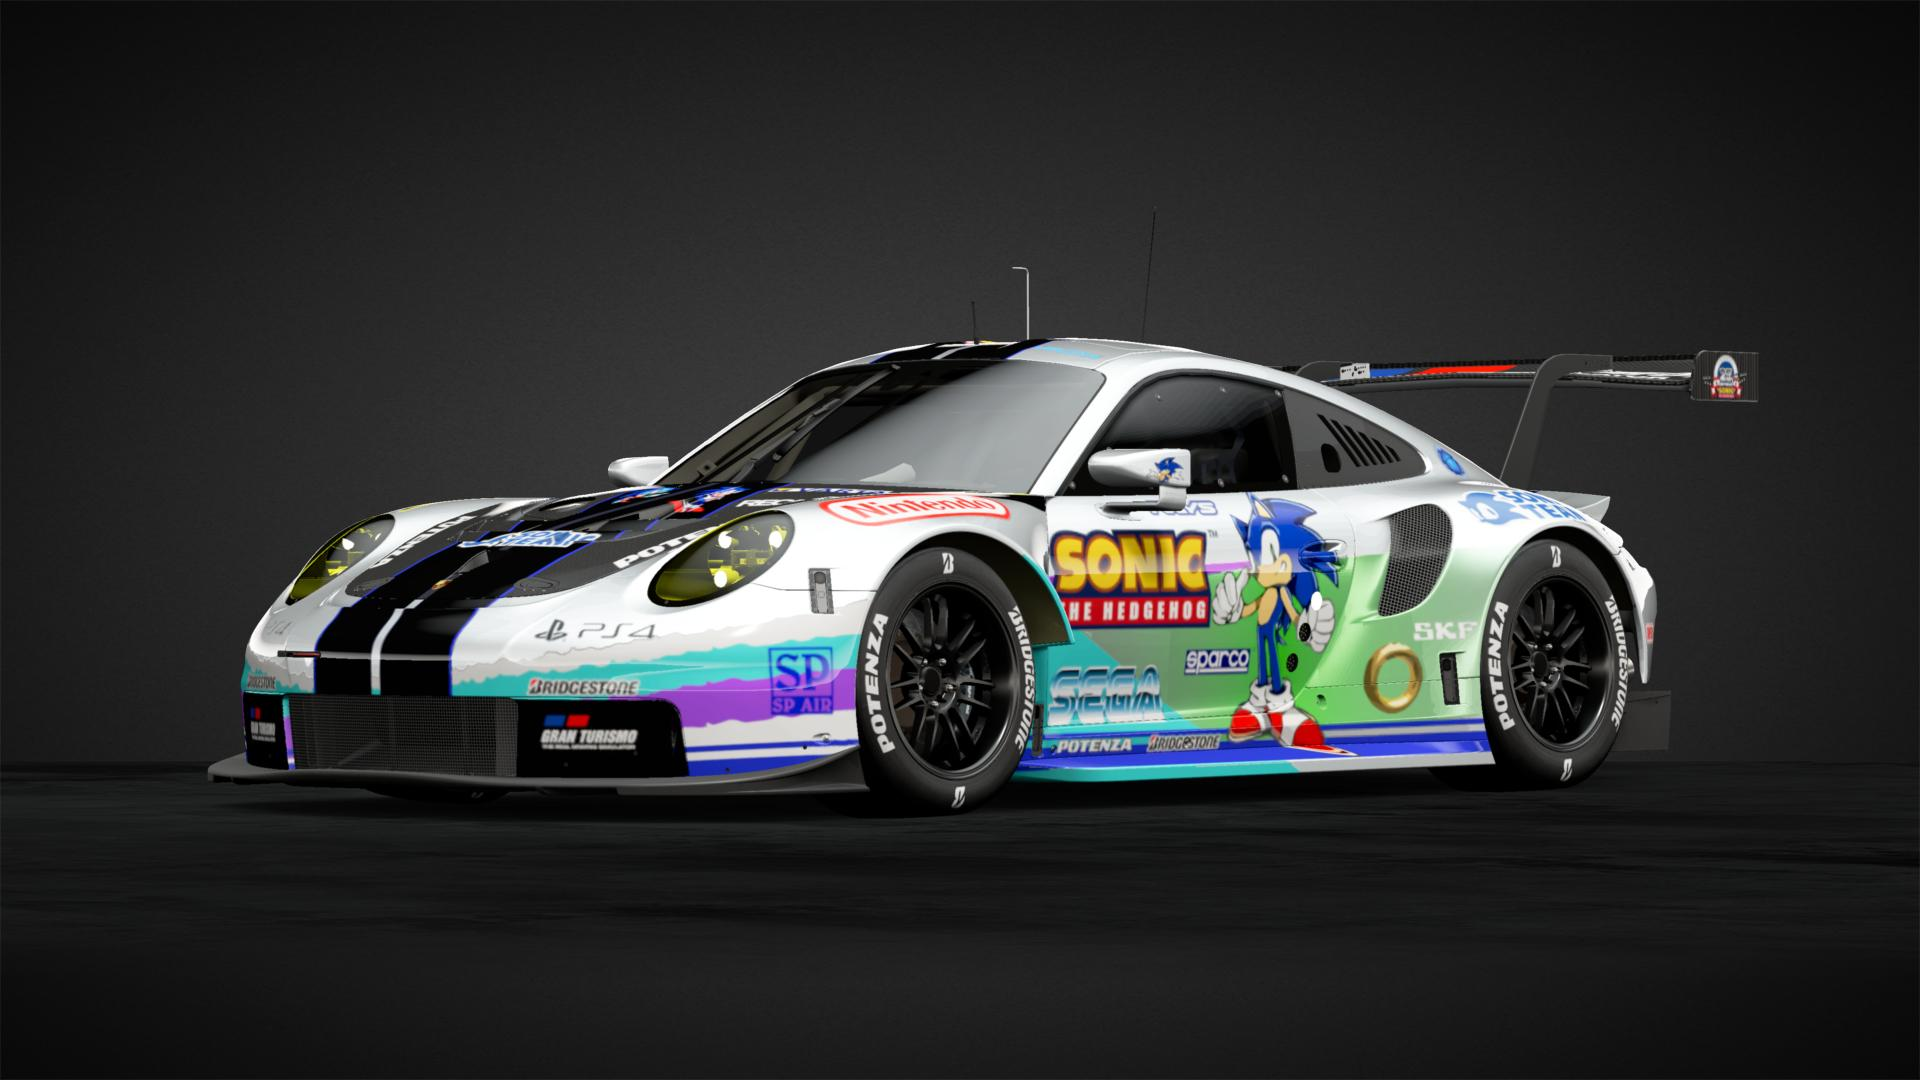 Sonic Car Livery By Seraphim 20 Community Gran Turismo Sport